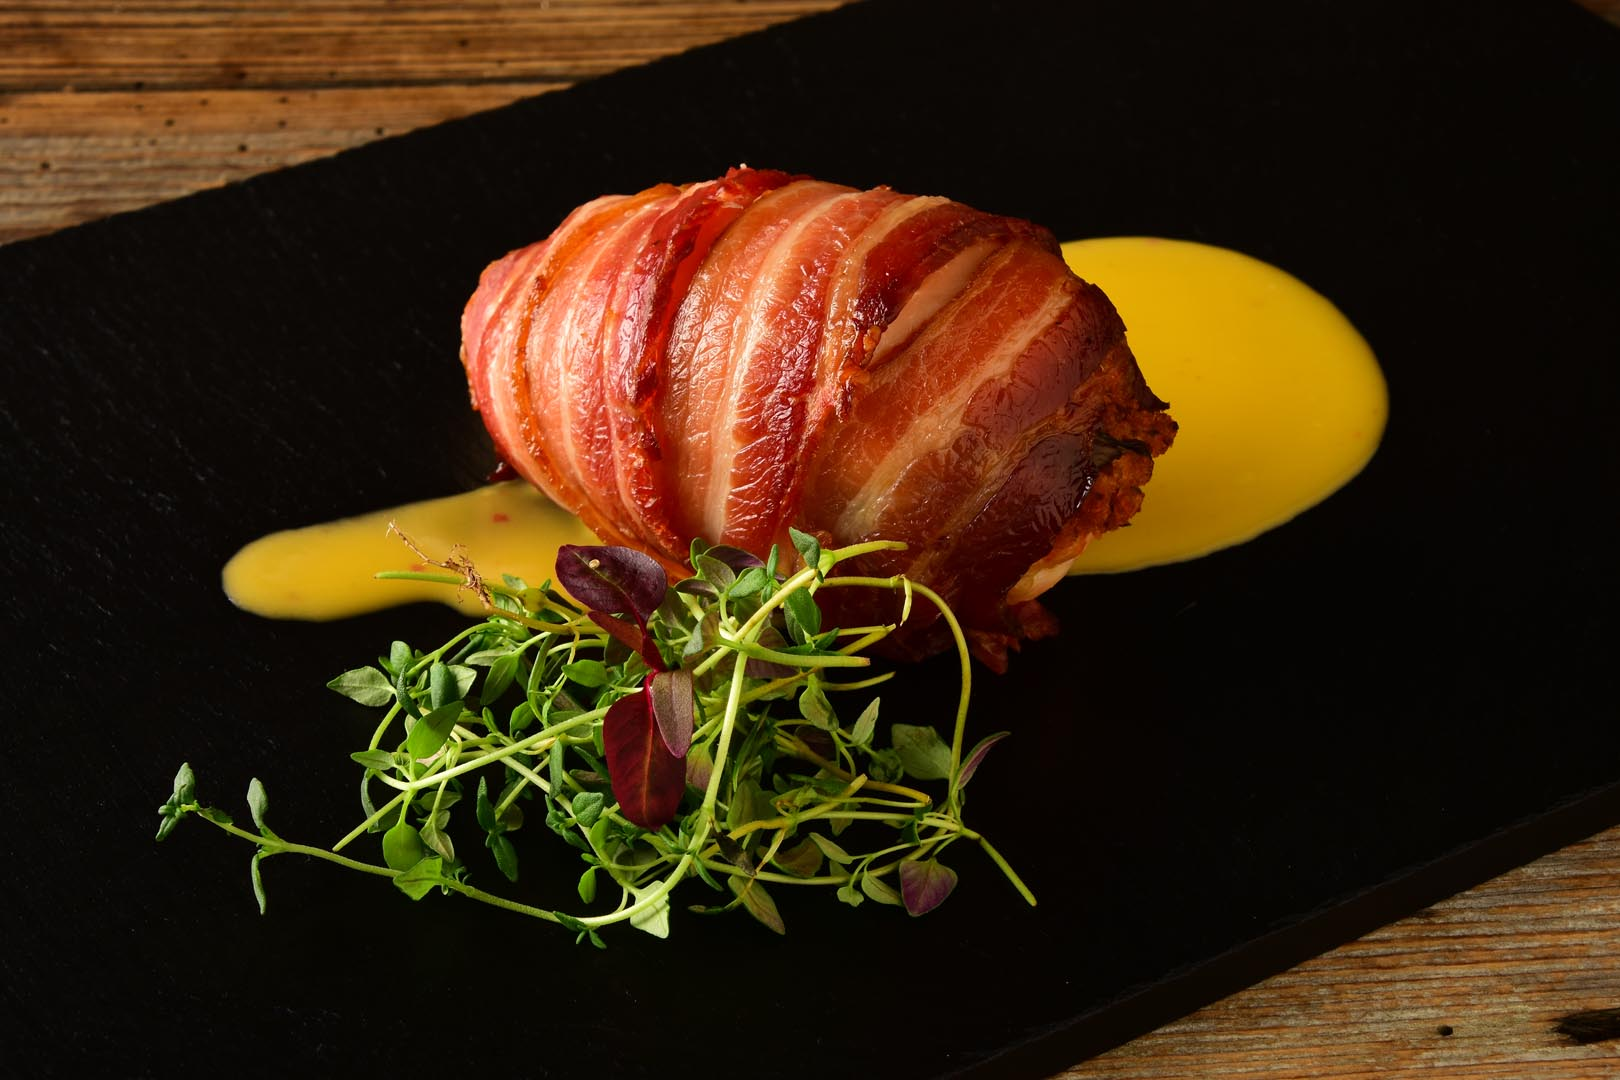 Chicken wrapped with bacon